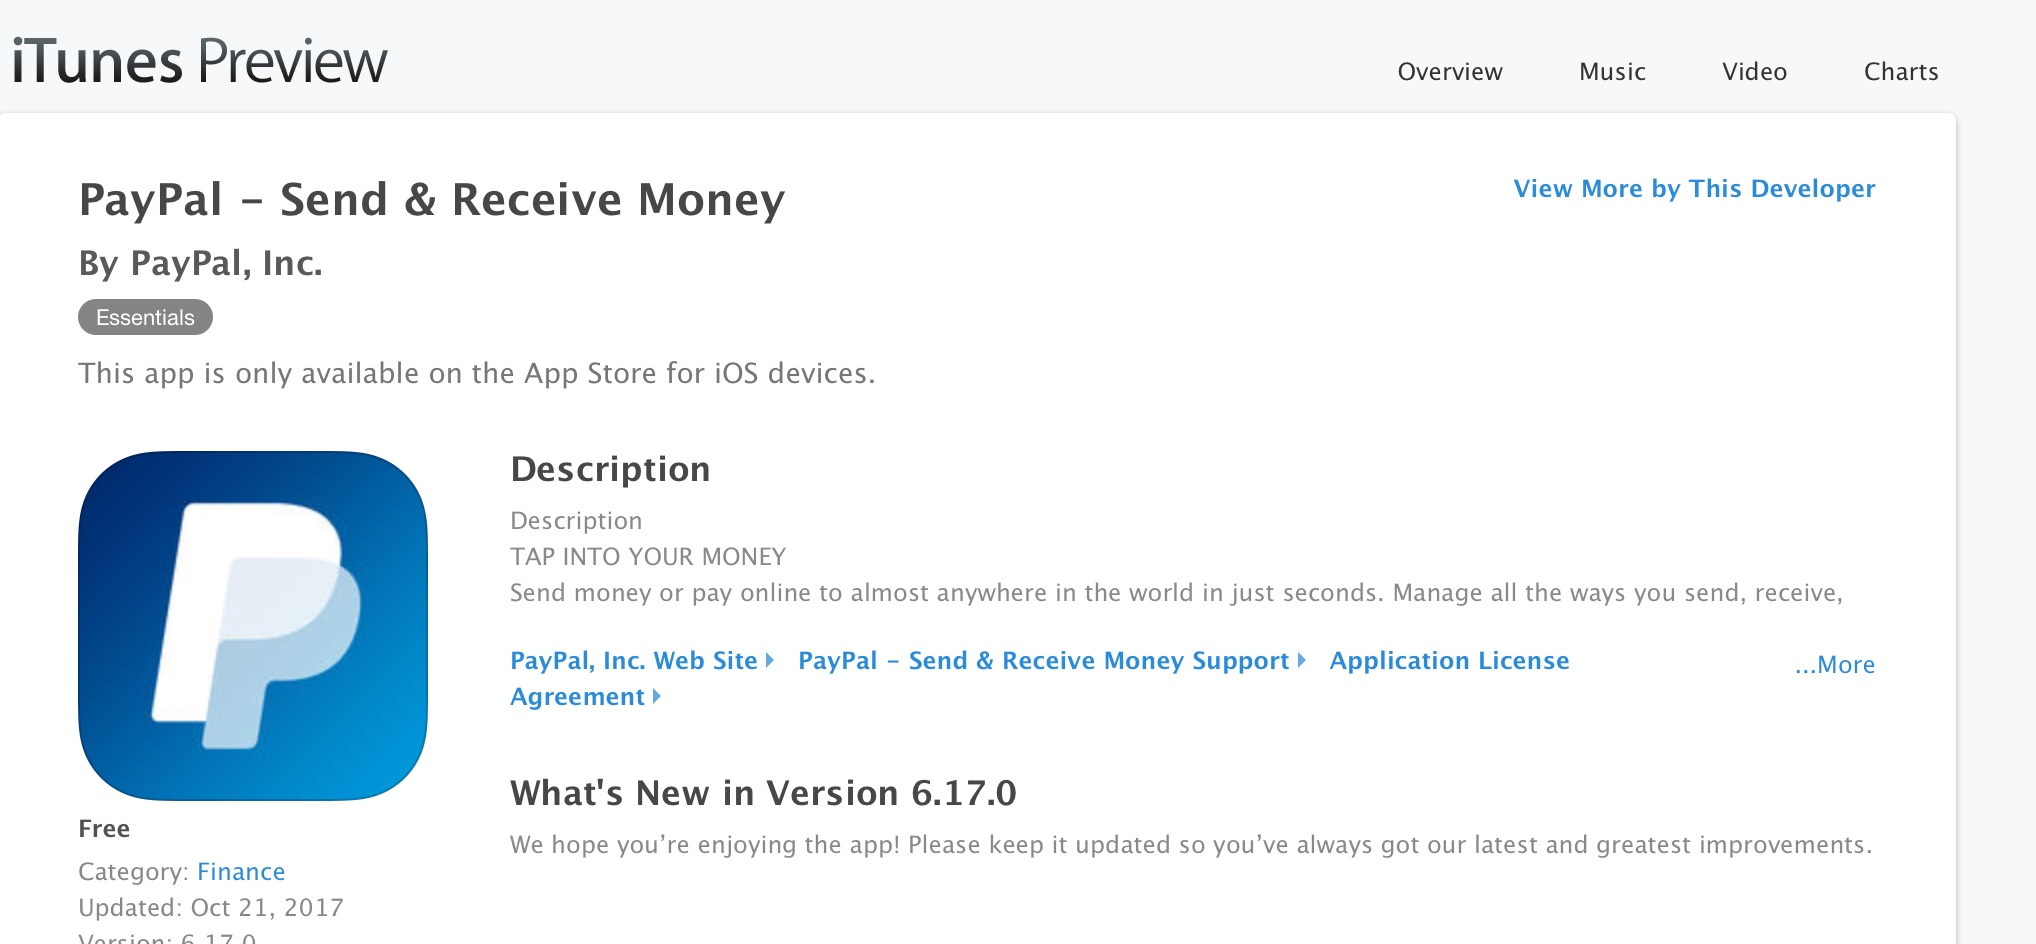 PayPal Mobile iOS App